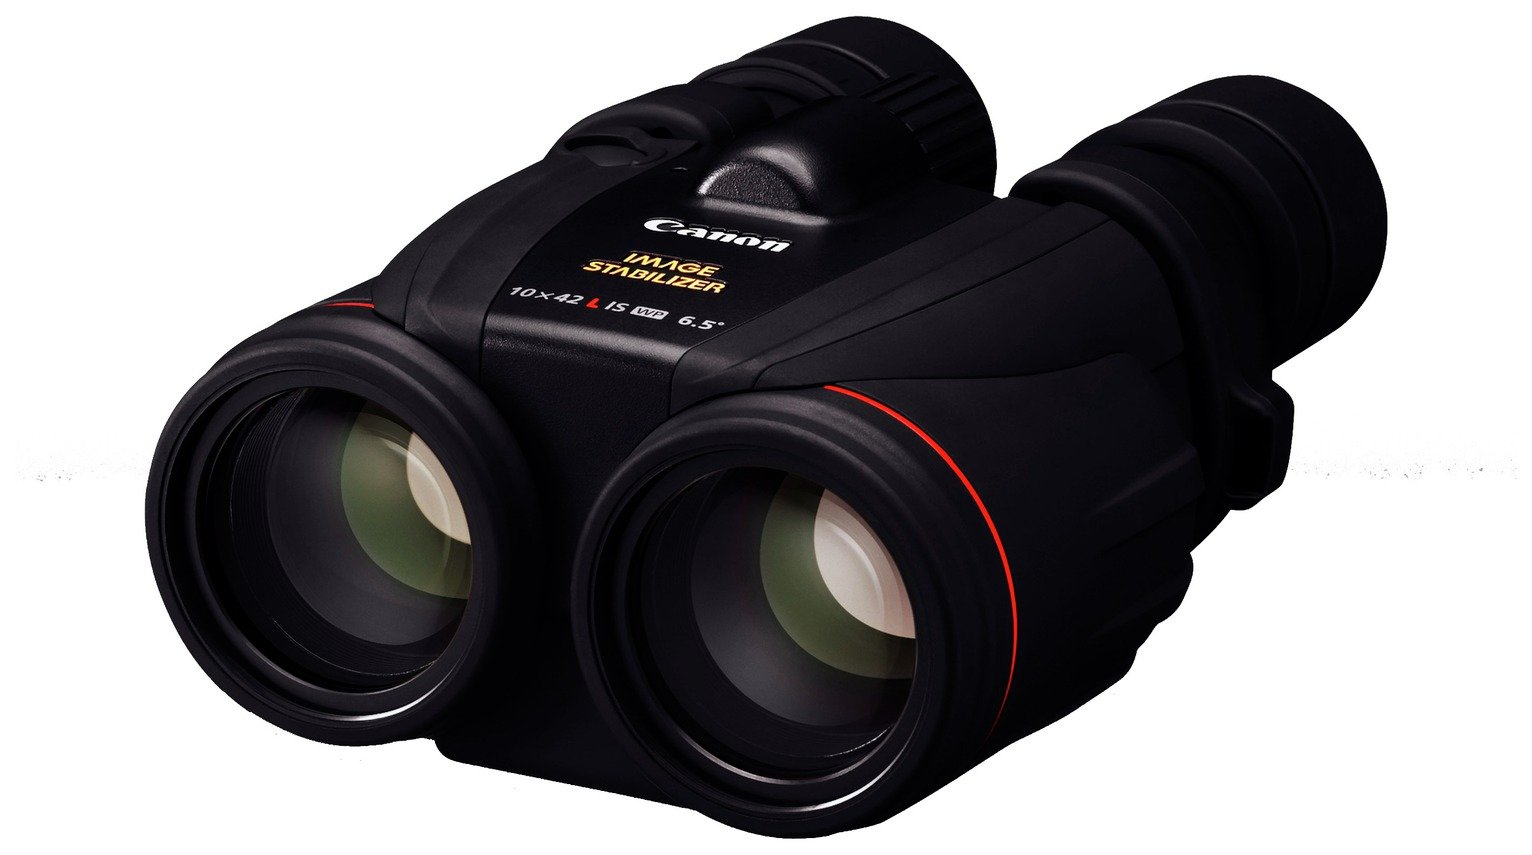 Image of Canon 10 x 42L IS WP Binoculars